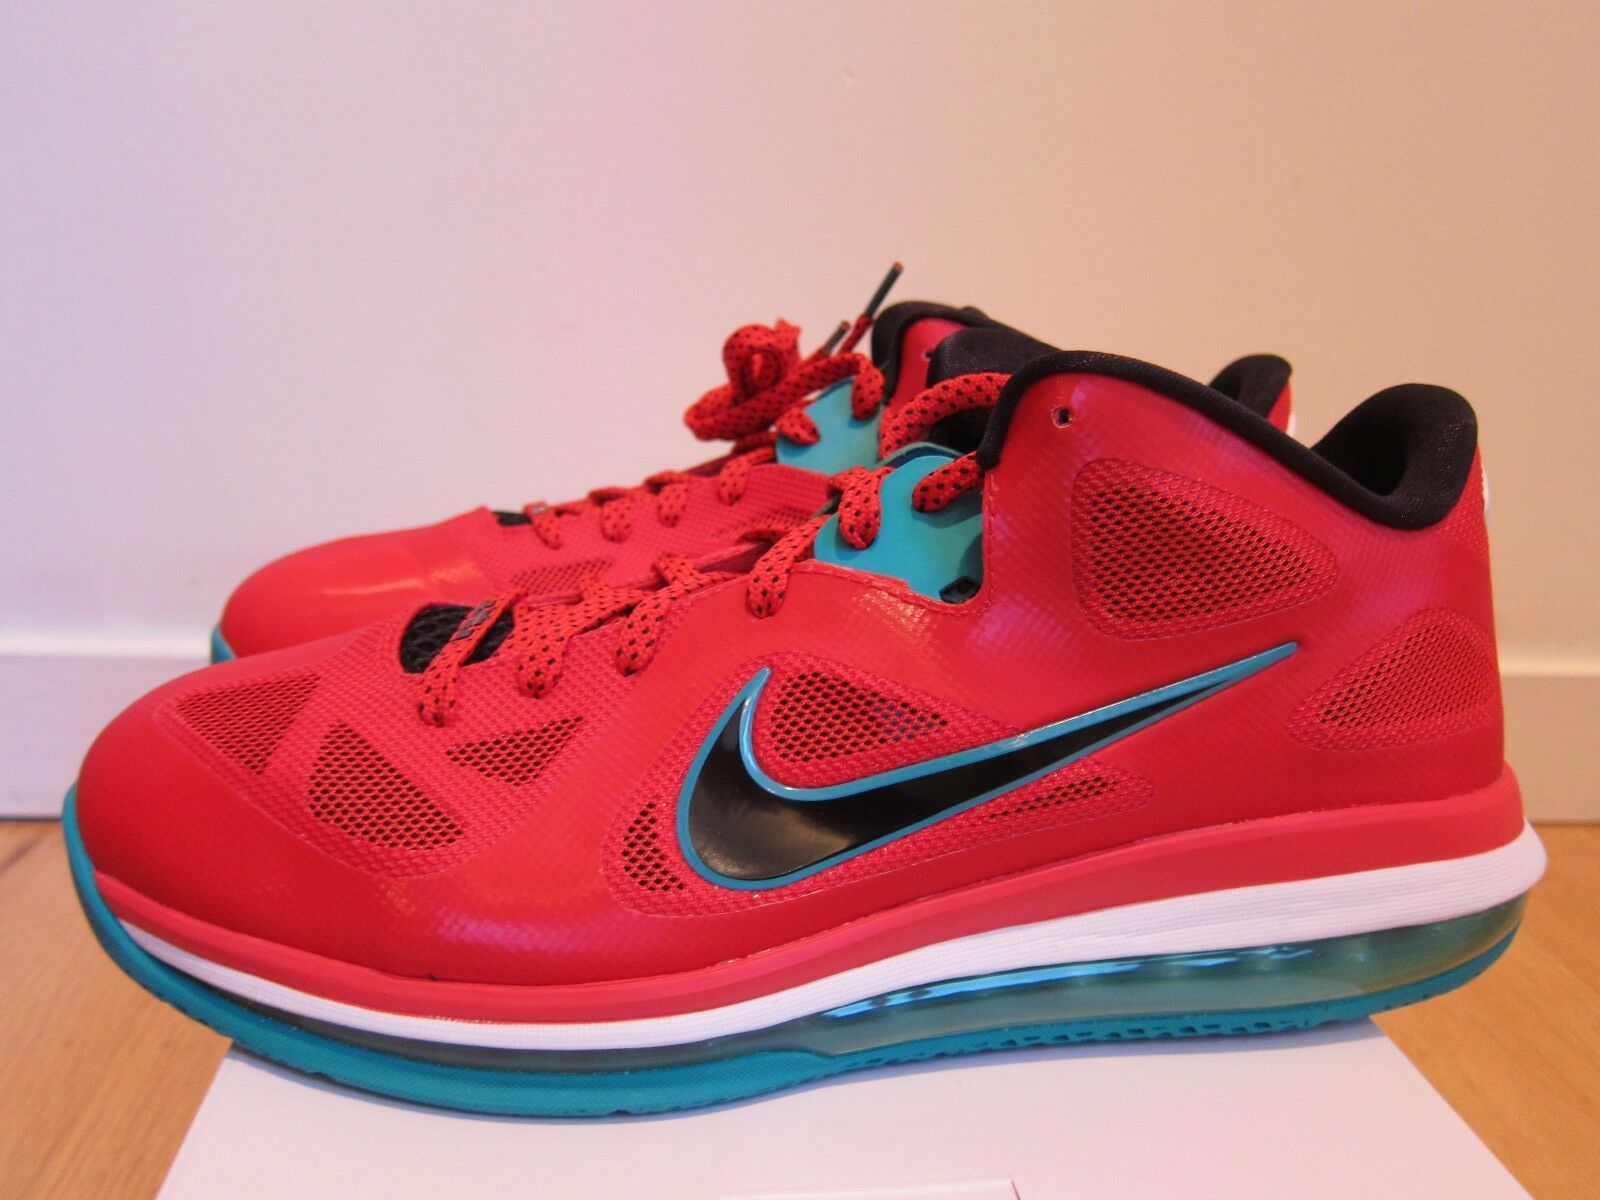 Nike Air Lebron 9 Low Liverpool Action Red Black Green White size 12.5